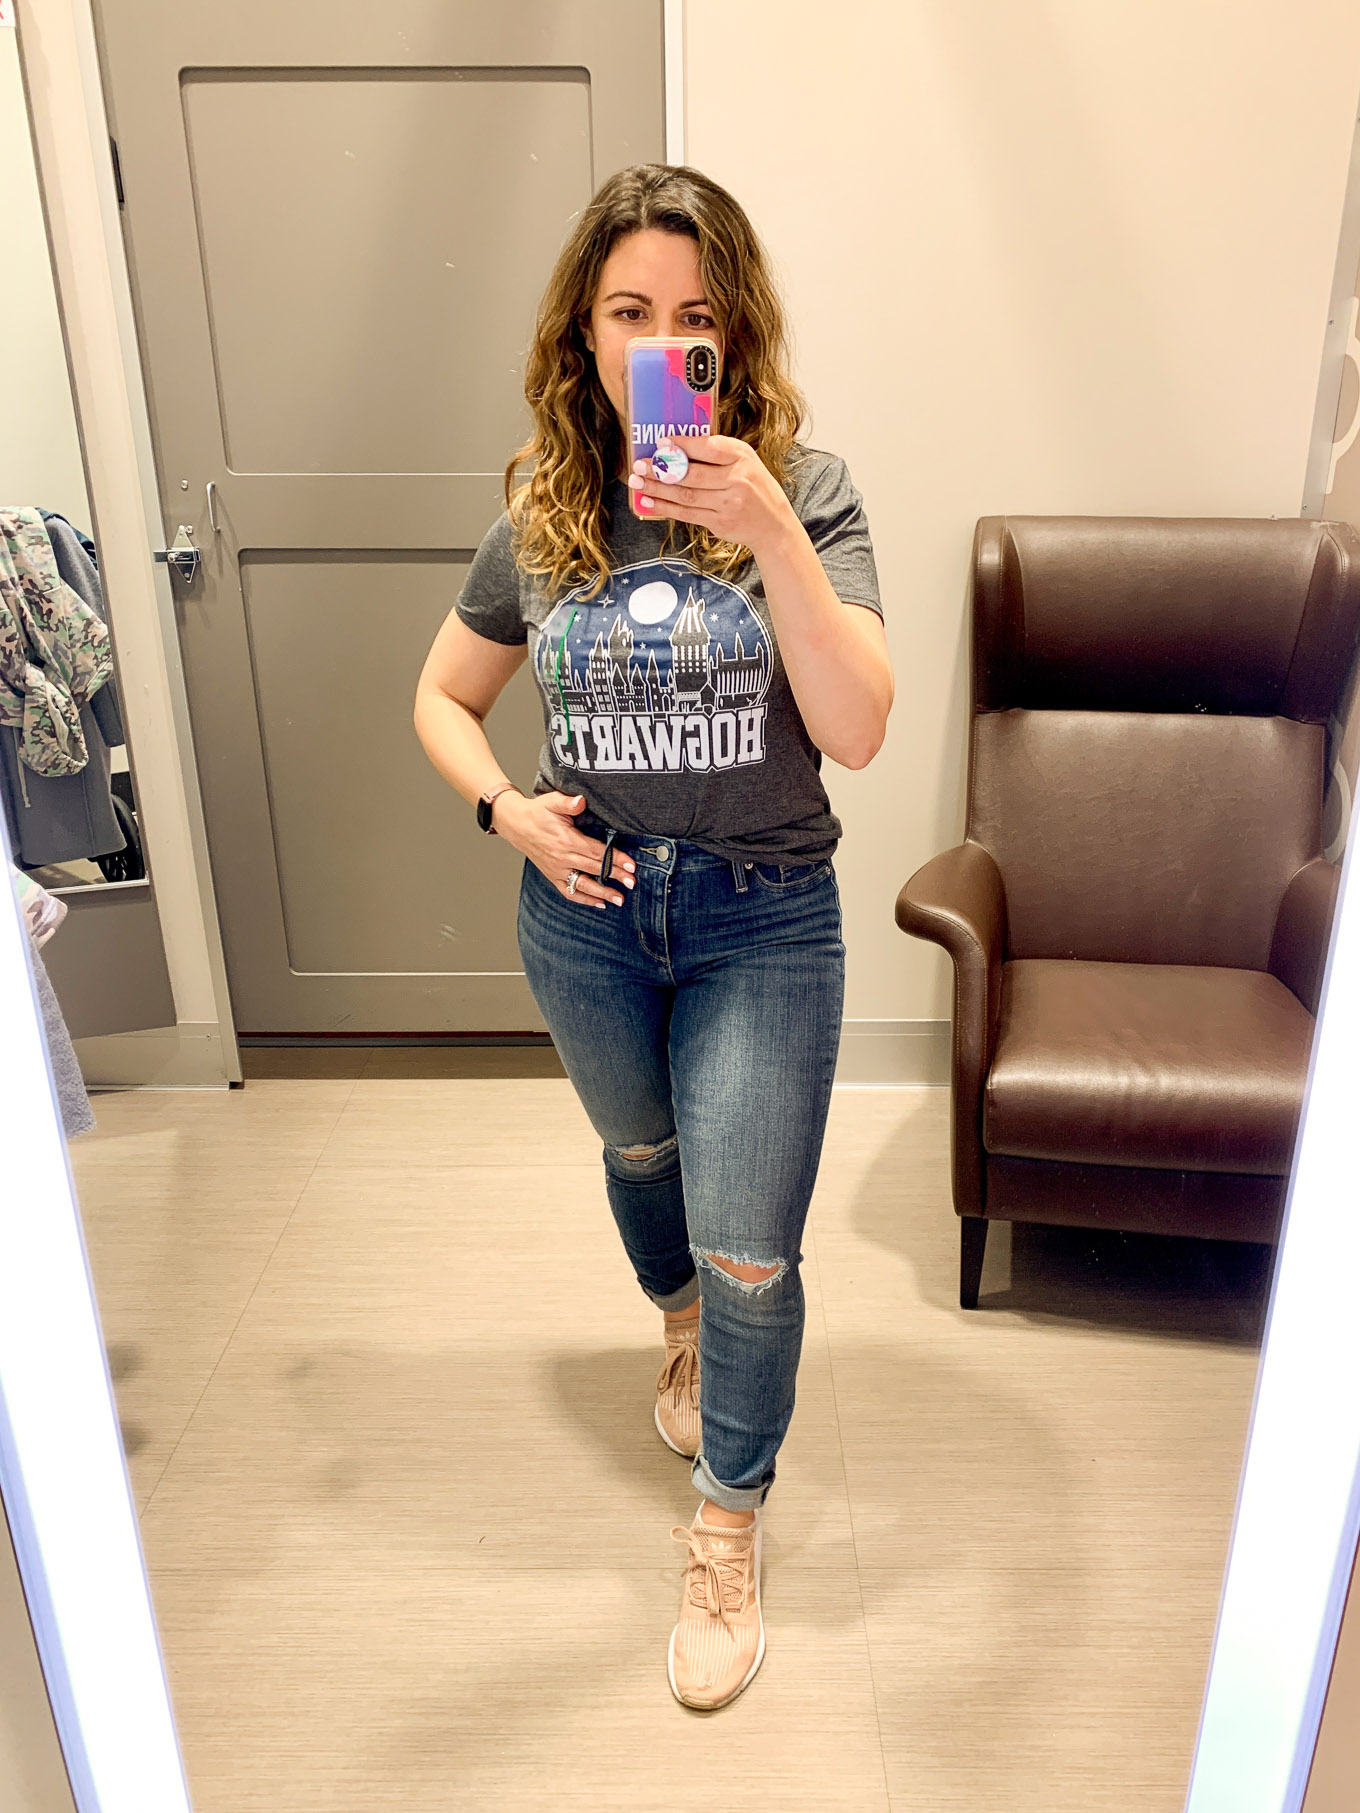 Target Try On by popular Chicago fashion blog, Glass of Glam: image of a woman wearing Target Women's Harry Potter Hogwarts Short Sleeve Graphic T-Shirt  and Target Women's High-Rise Jeans.